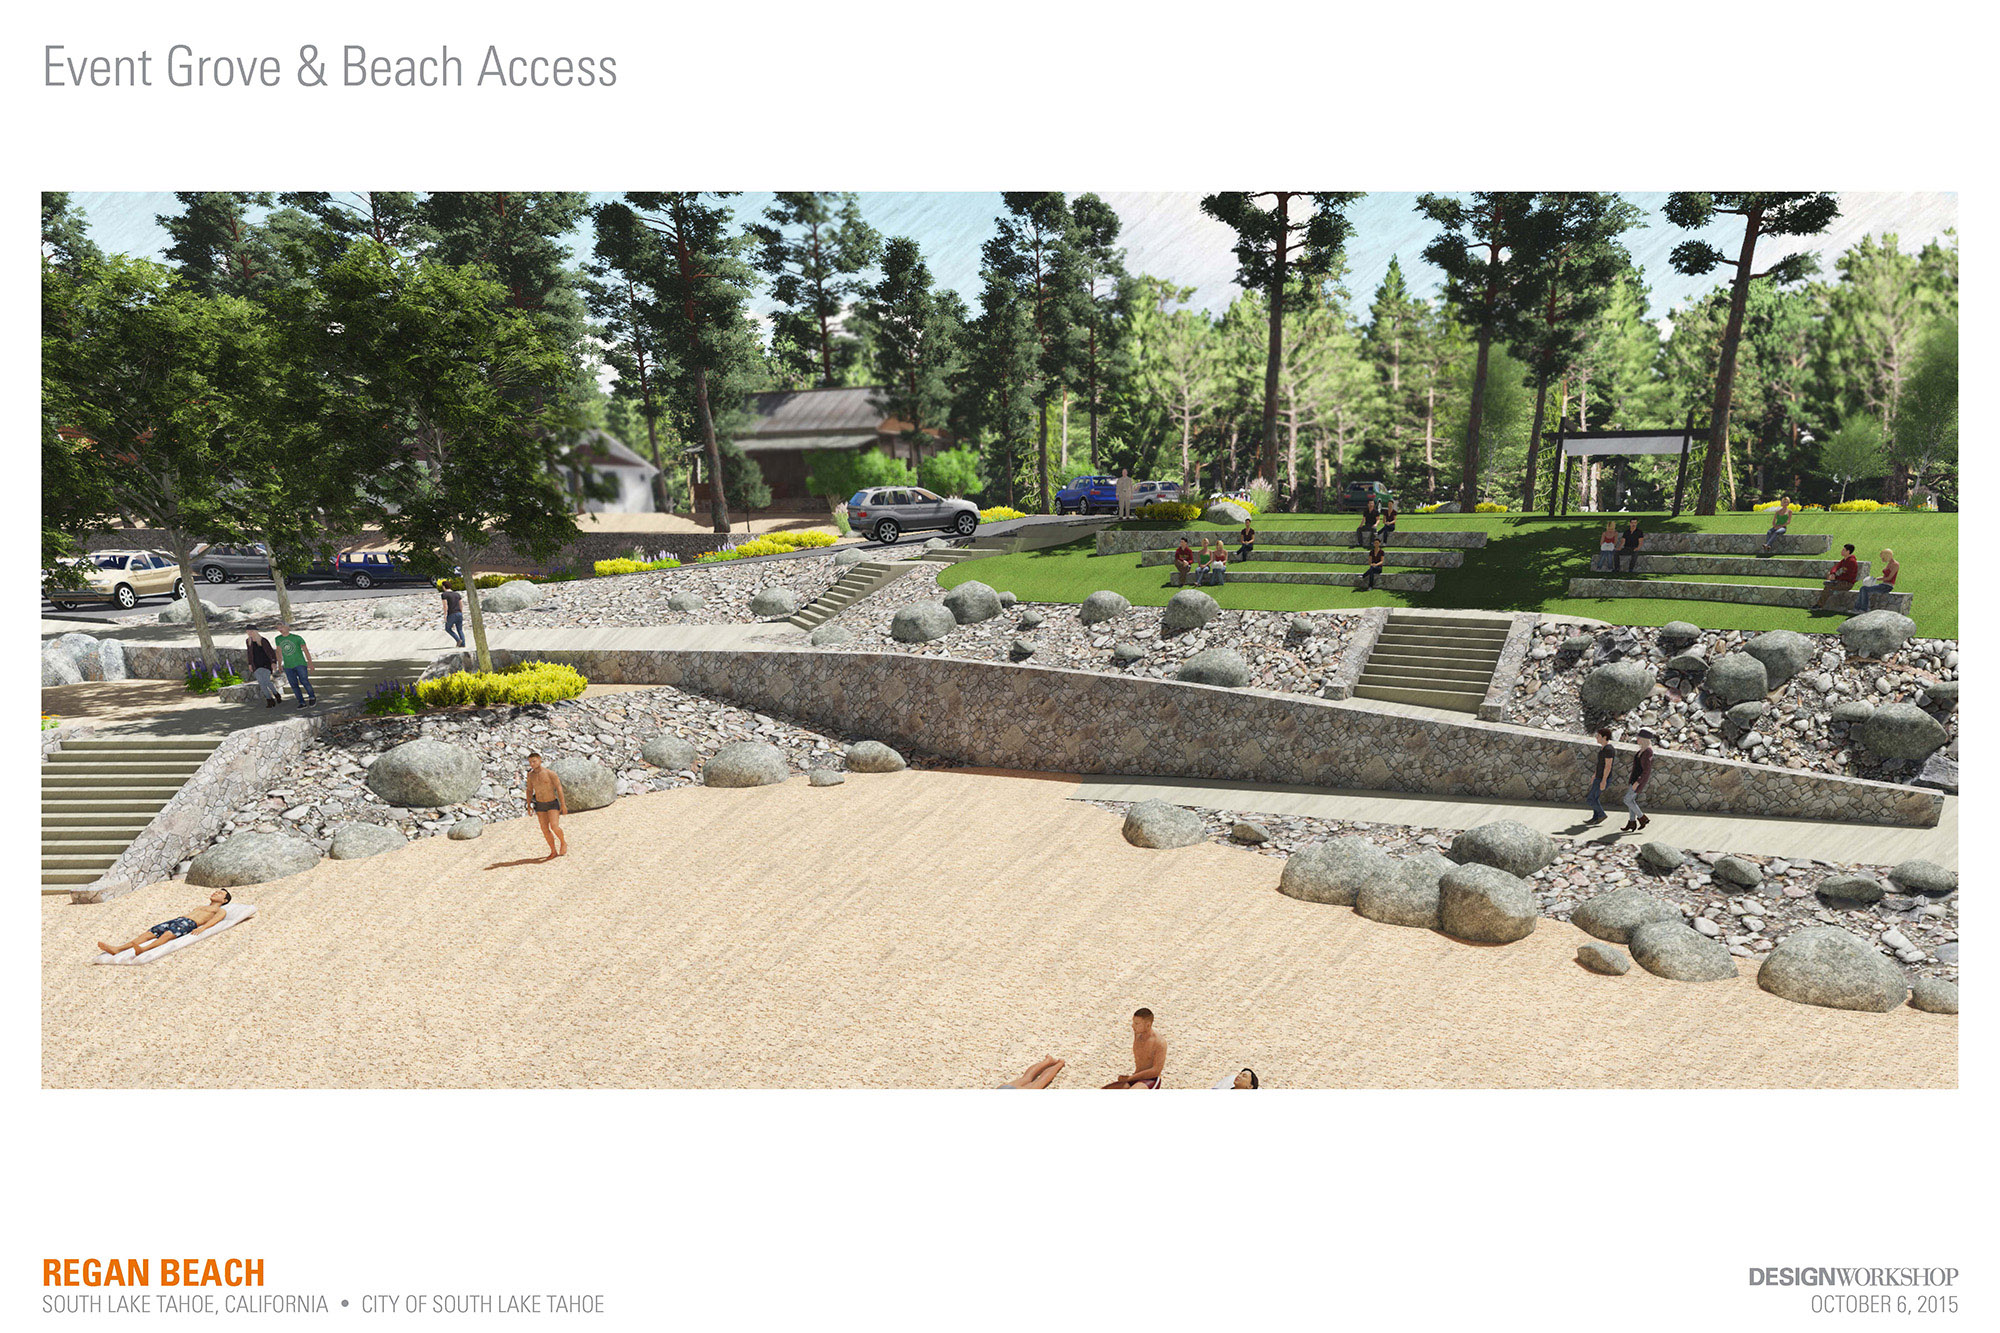 Event Grove and Beach Access